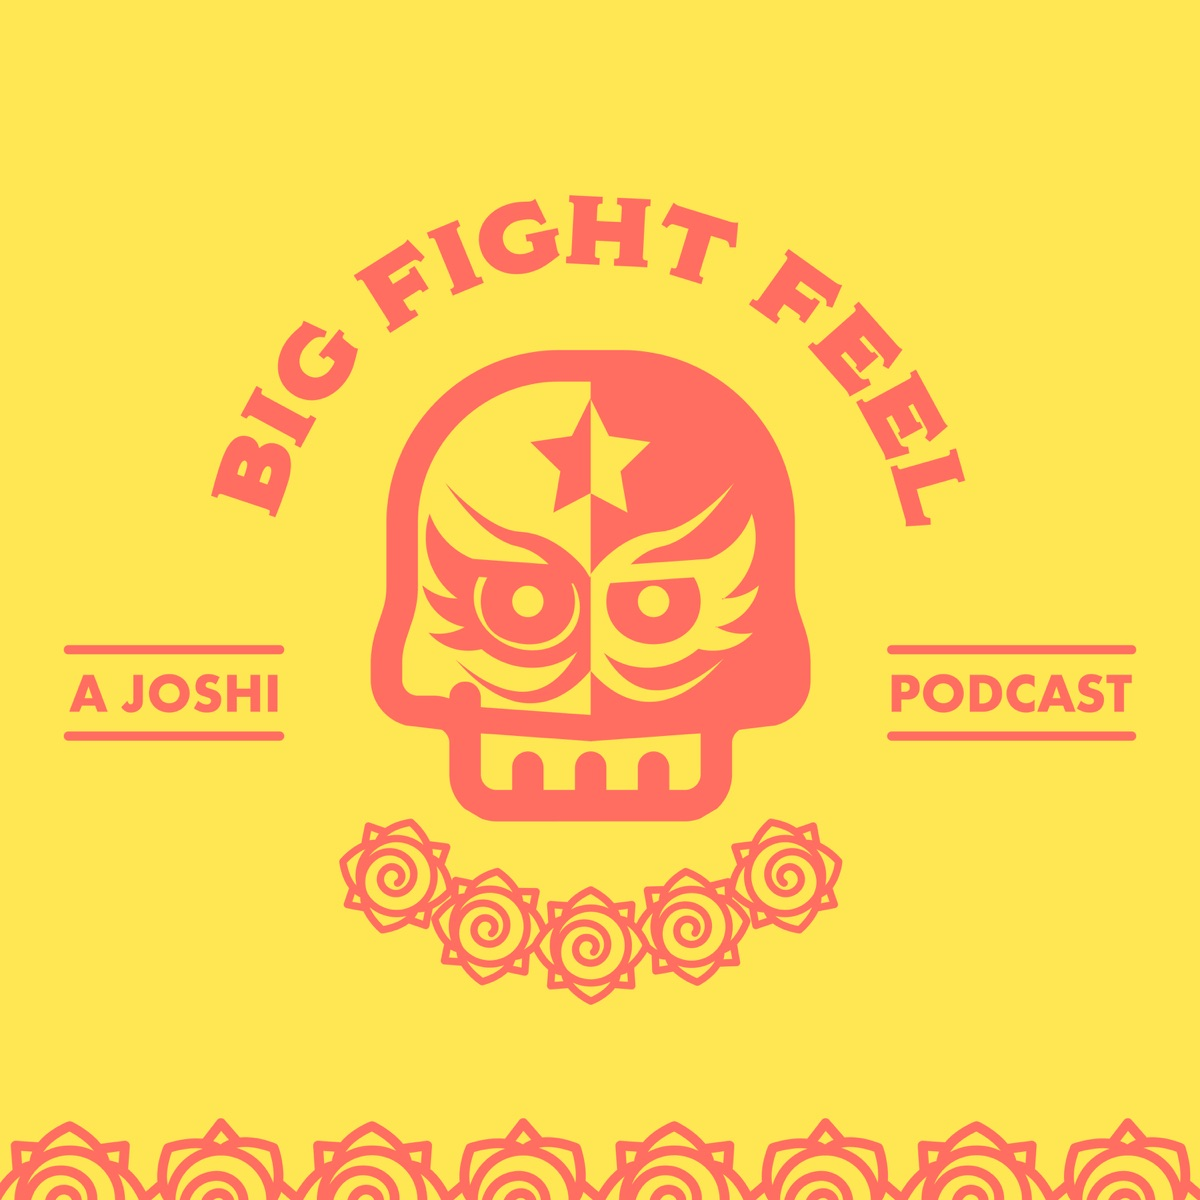 Big Fight Feel: A Joshi Pro Wrestling Podcast